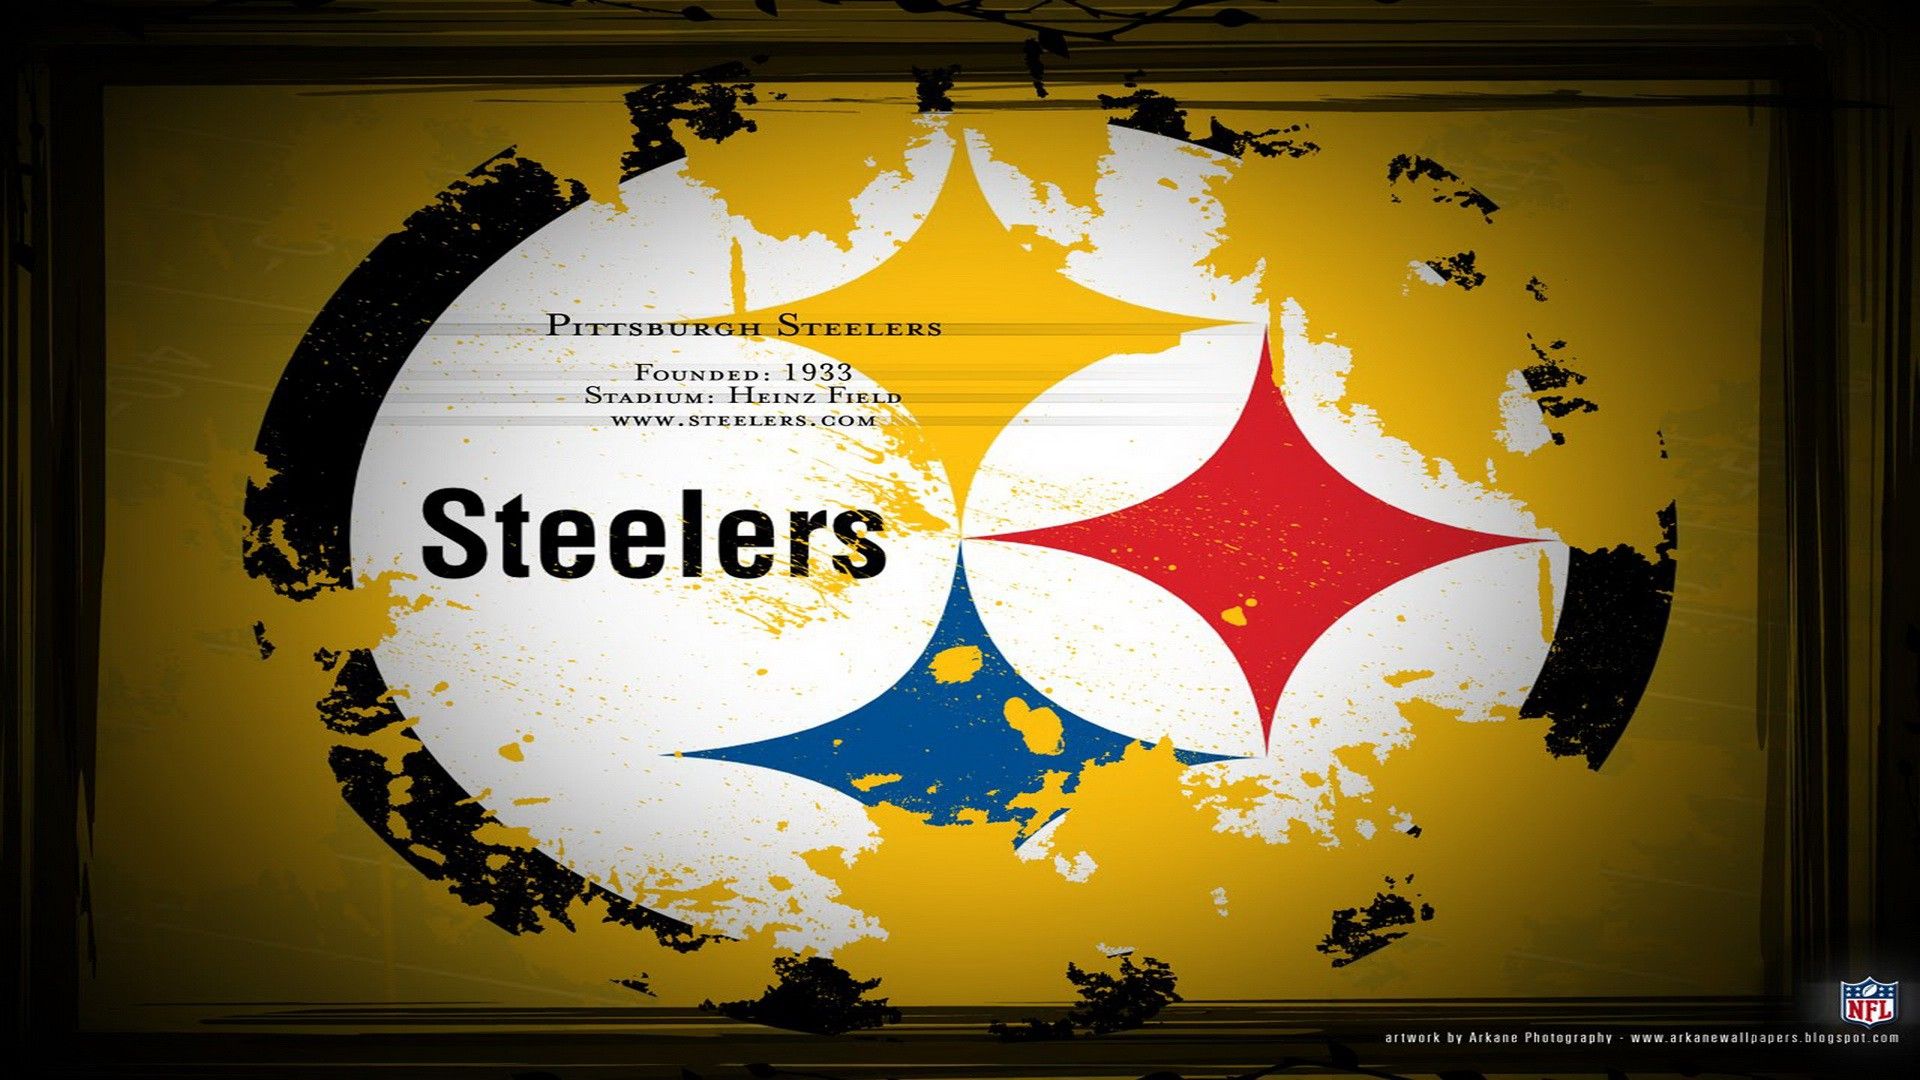 Steelers Wallpapers 2015 1920x1080